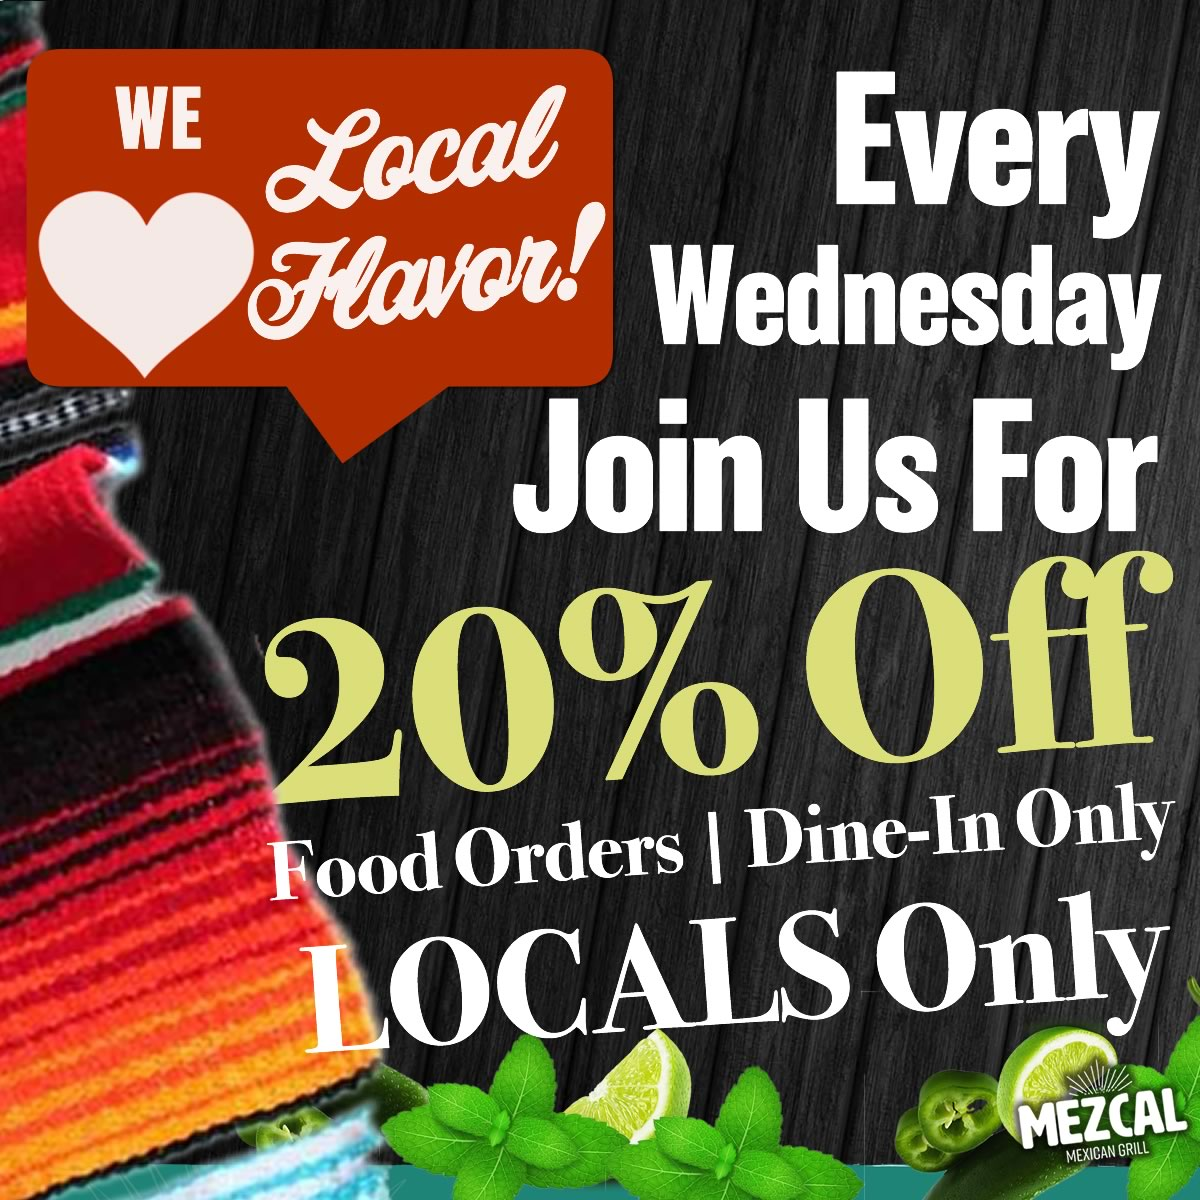 Nov,25 2020 Locals Night 20% Off Mezcal Mexican Grill | Seascape Resort Destin Florida Events